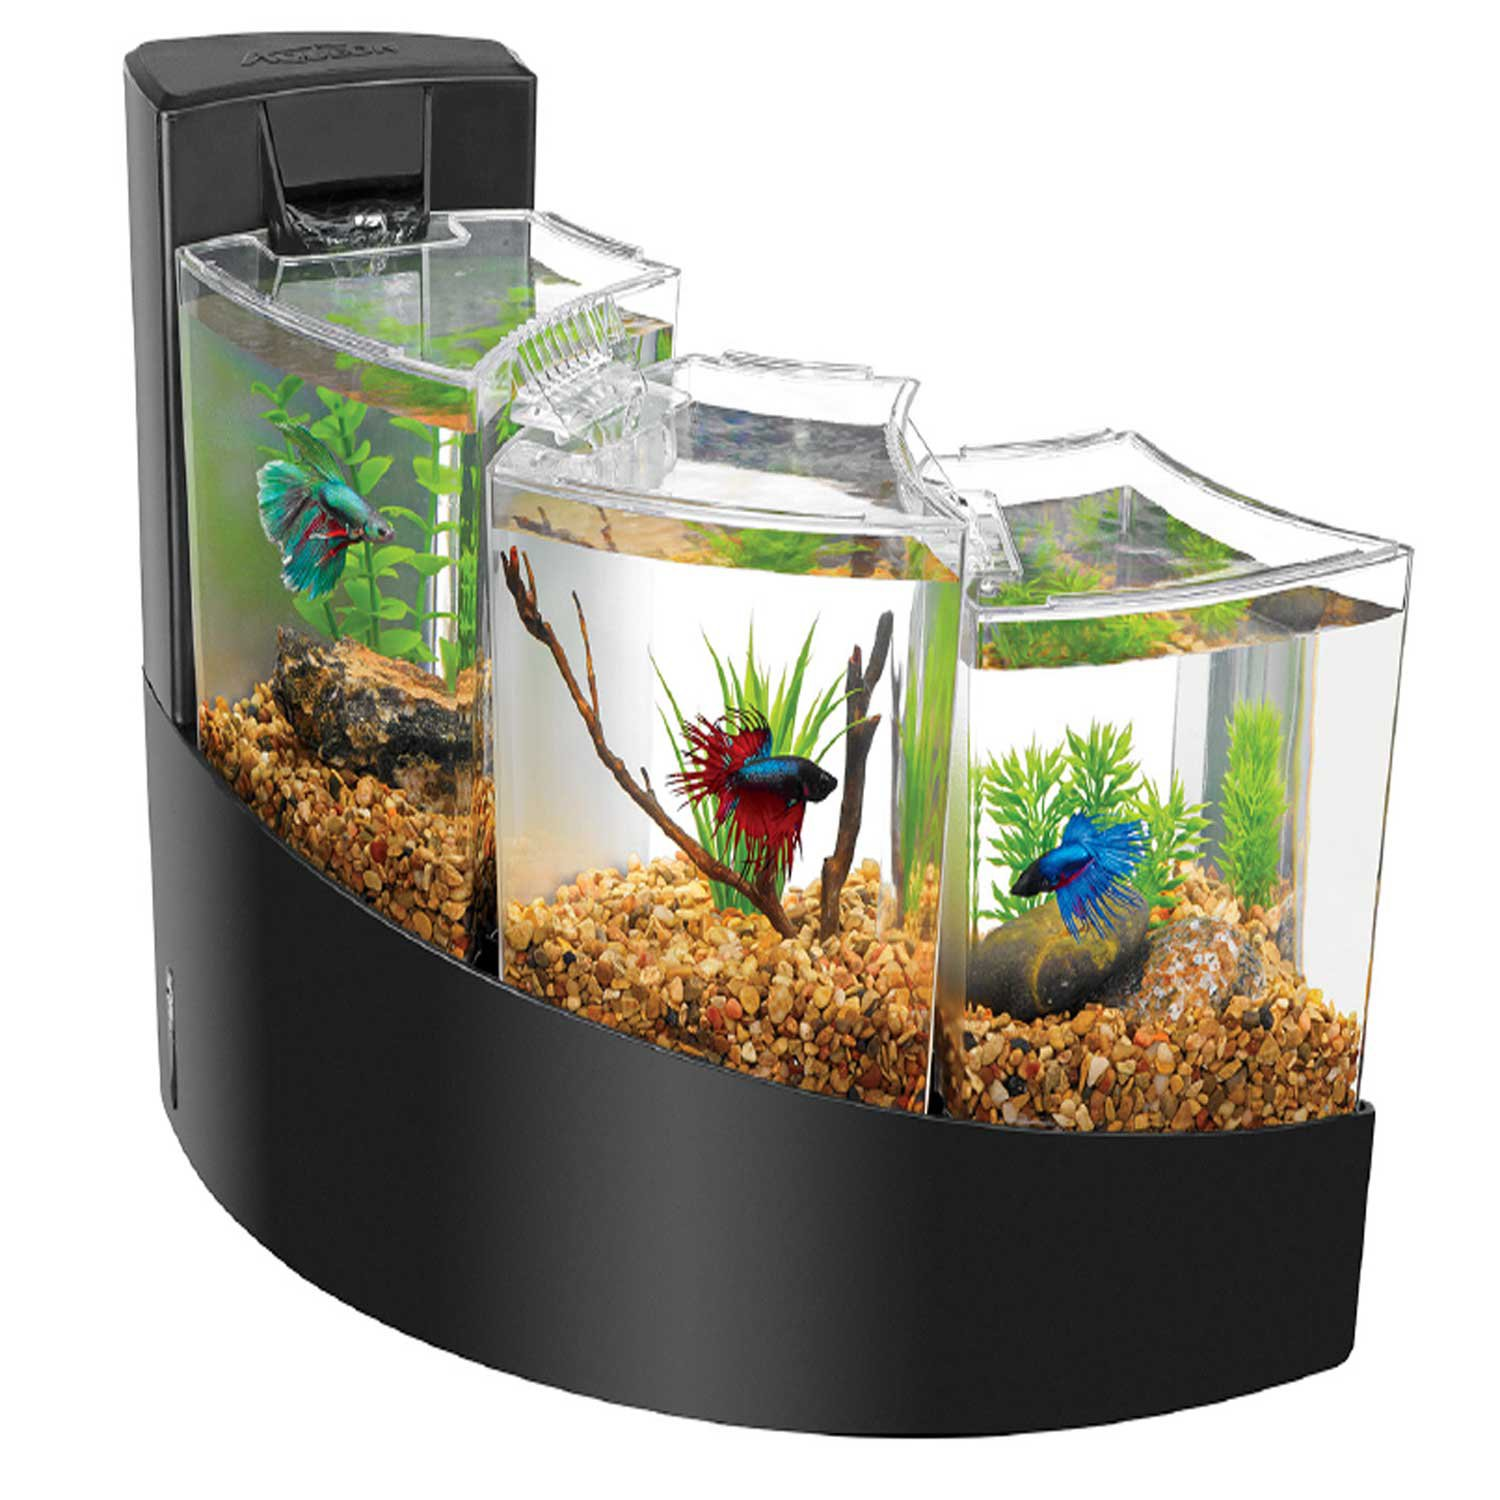 Aqueon glass aqueon kit betta falls black from for Betta fish tanks petco